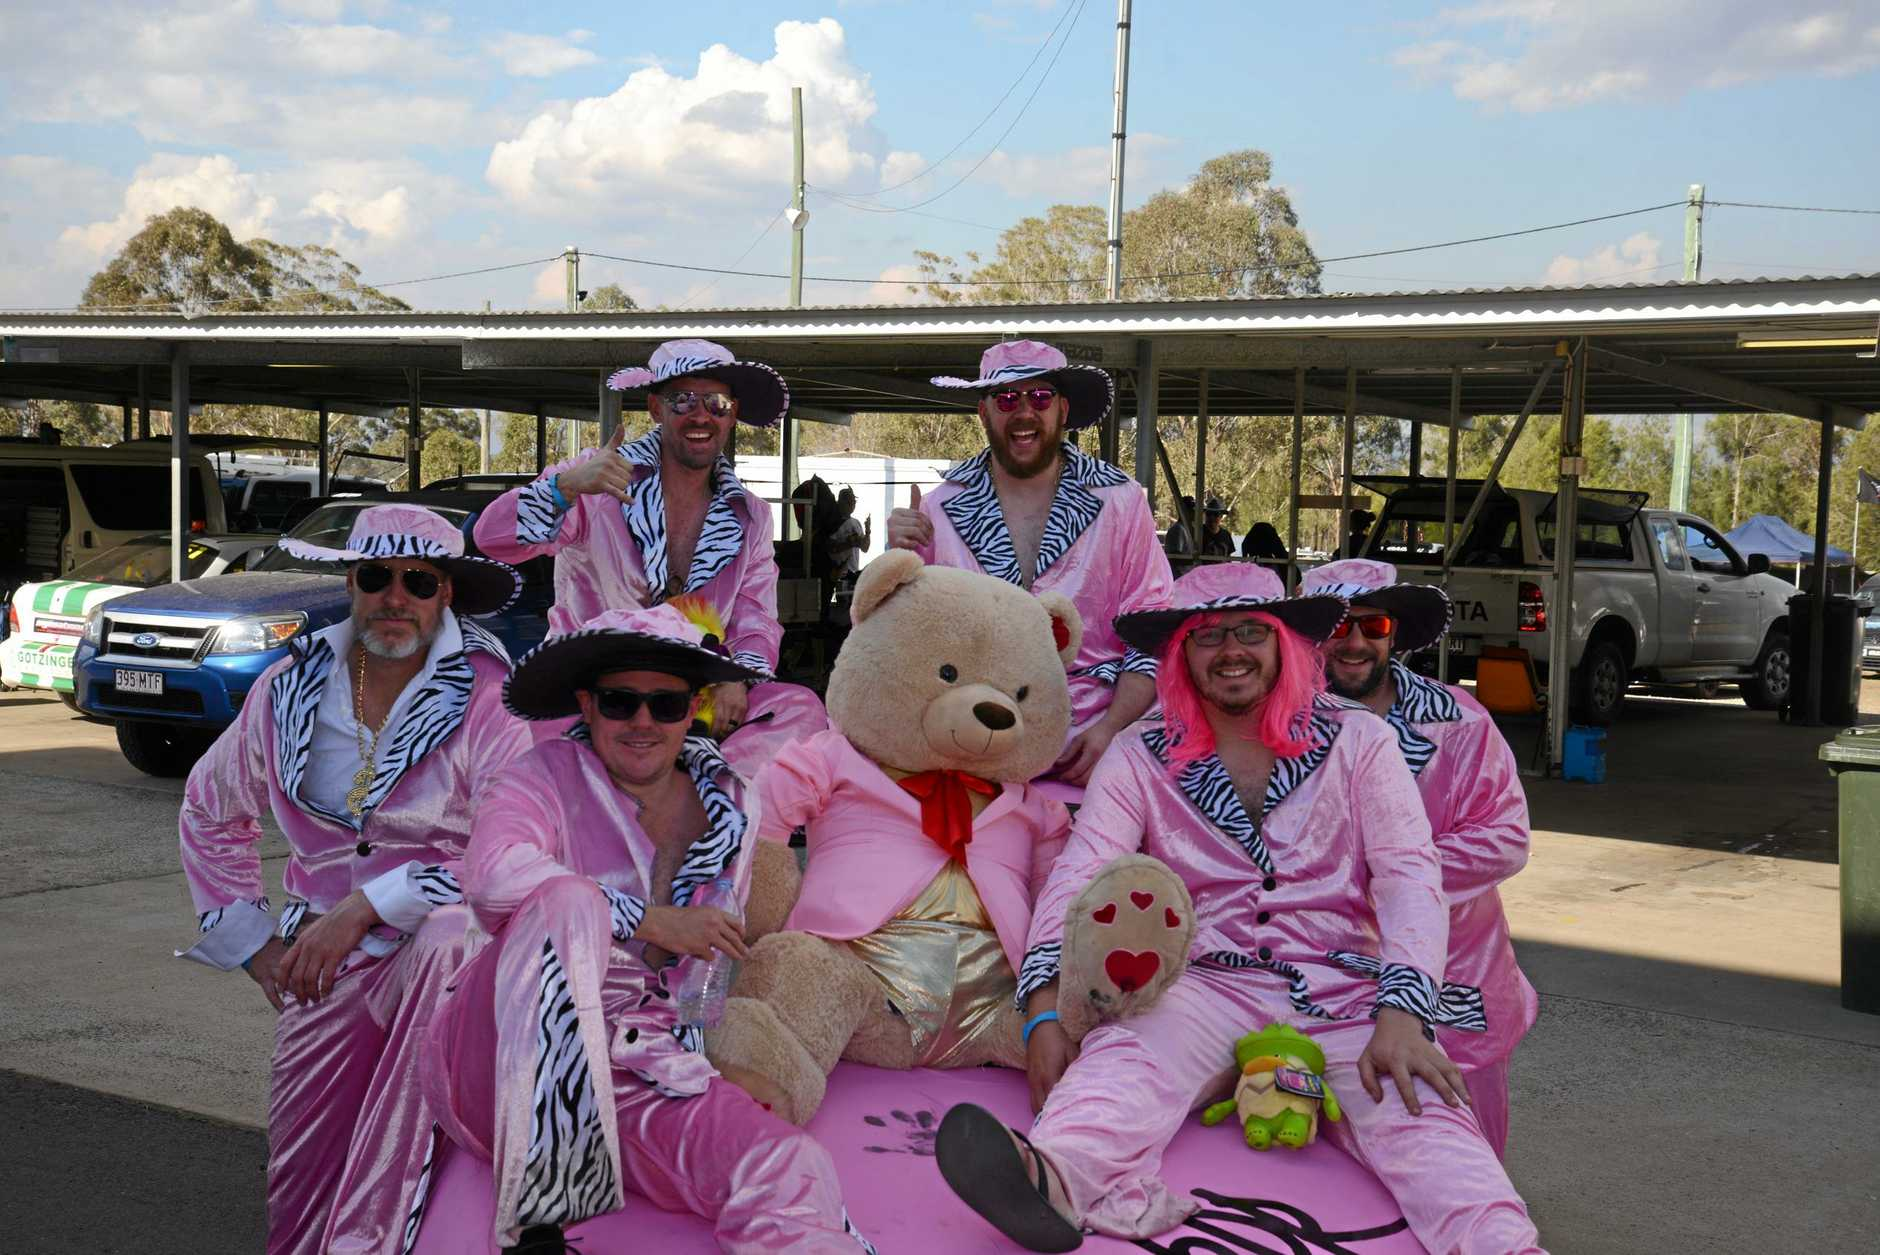 (Front, from left) Brisbane Lemons team Kris Martin, Grant Hanrick, (back) Greg Fairbrother, Dave McNallis, James Cuskelly and Nick May after finishing 24 Hours of Lemons in their pink car